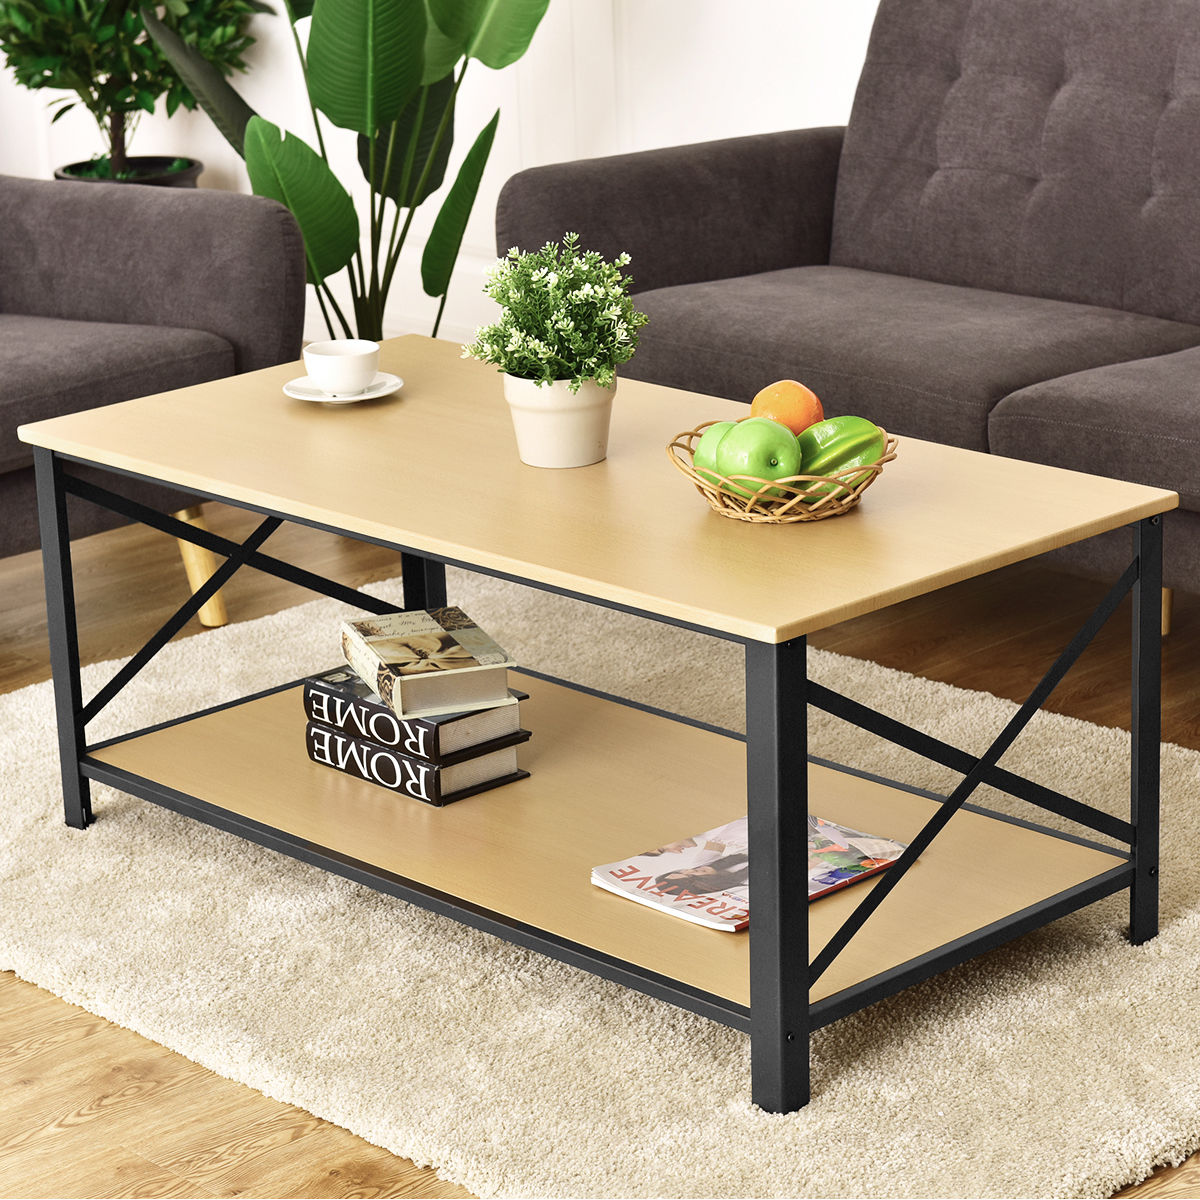 way wood coffee table cocktail side accent metal behind couch frame storage shelf gray round end marble and black breakfast with stools ifrane target kindle fire floor threshold